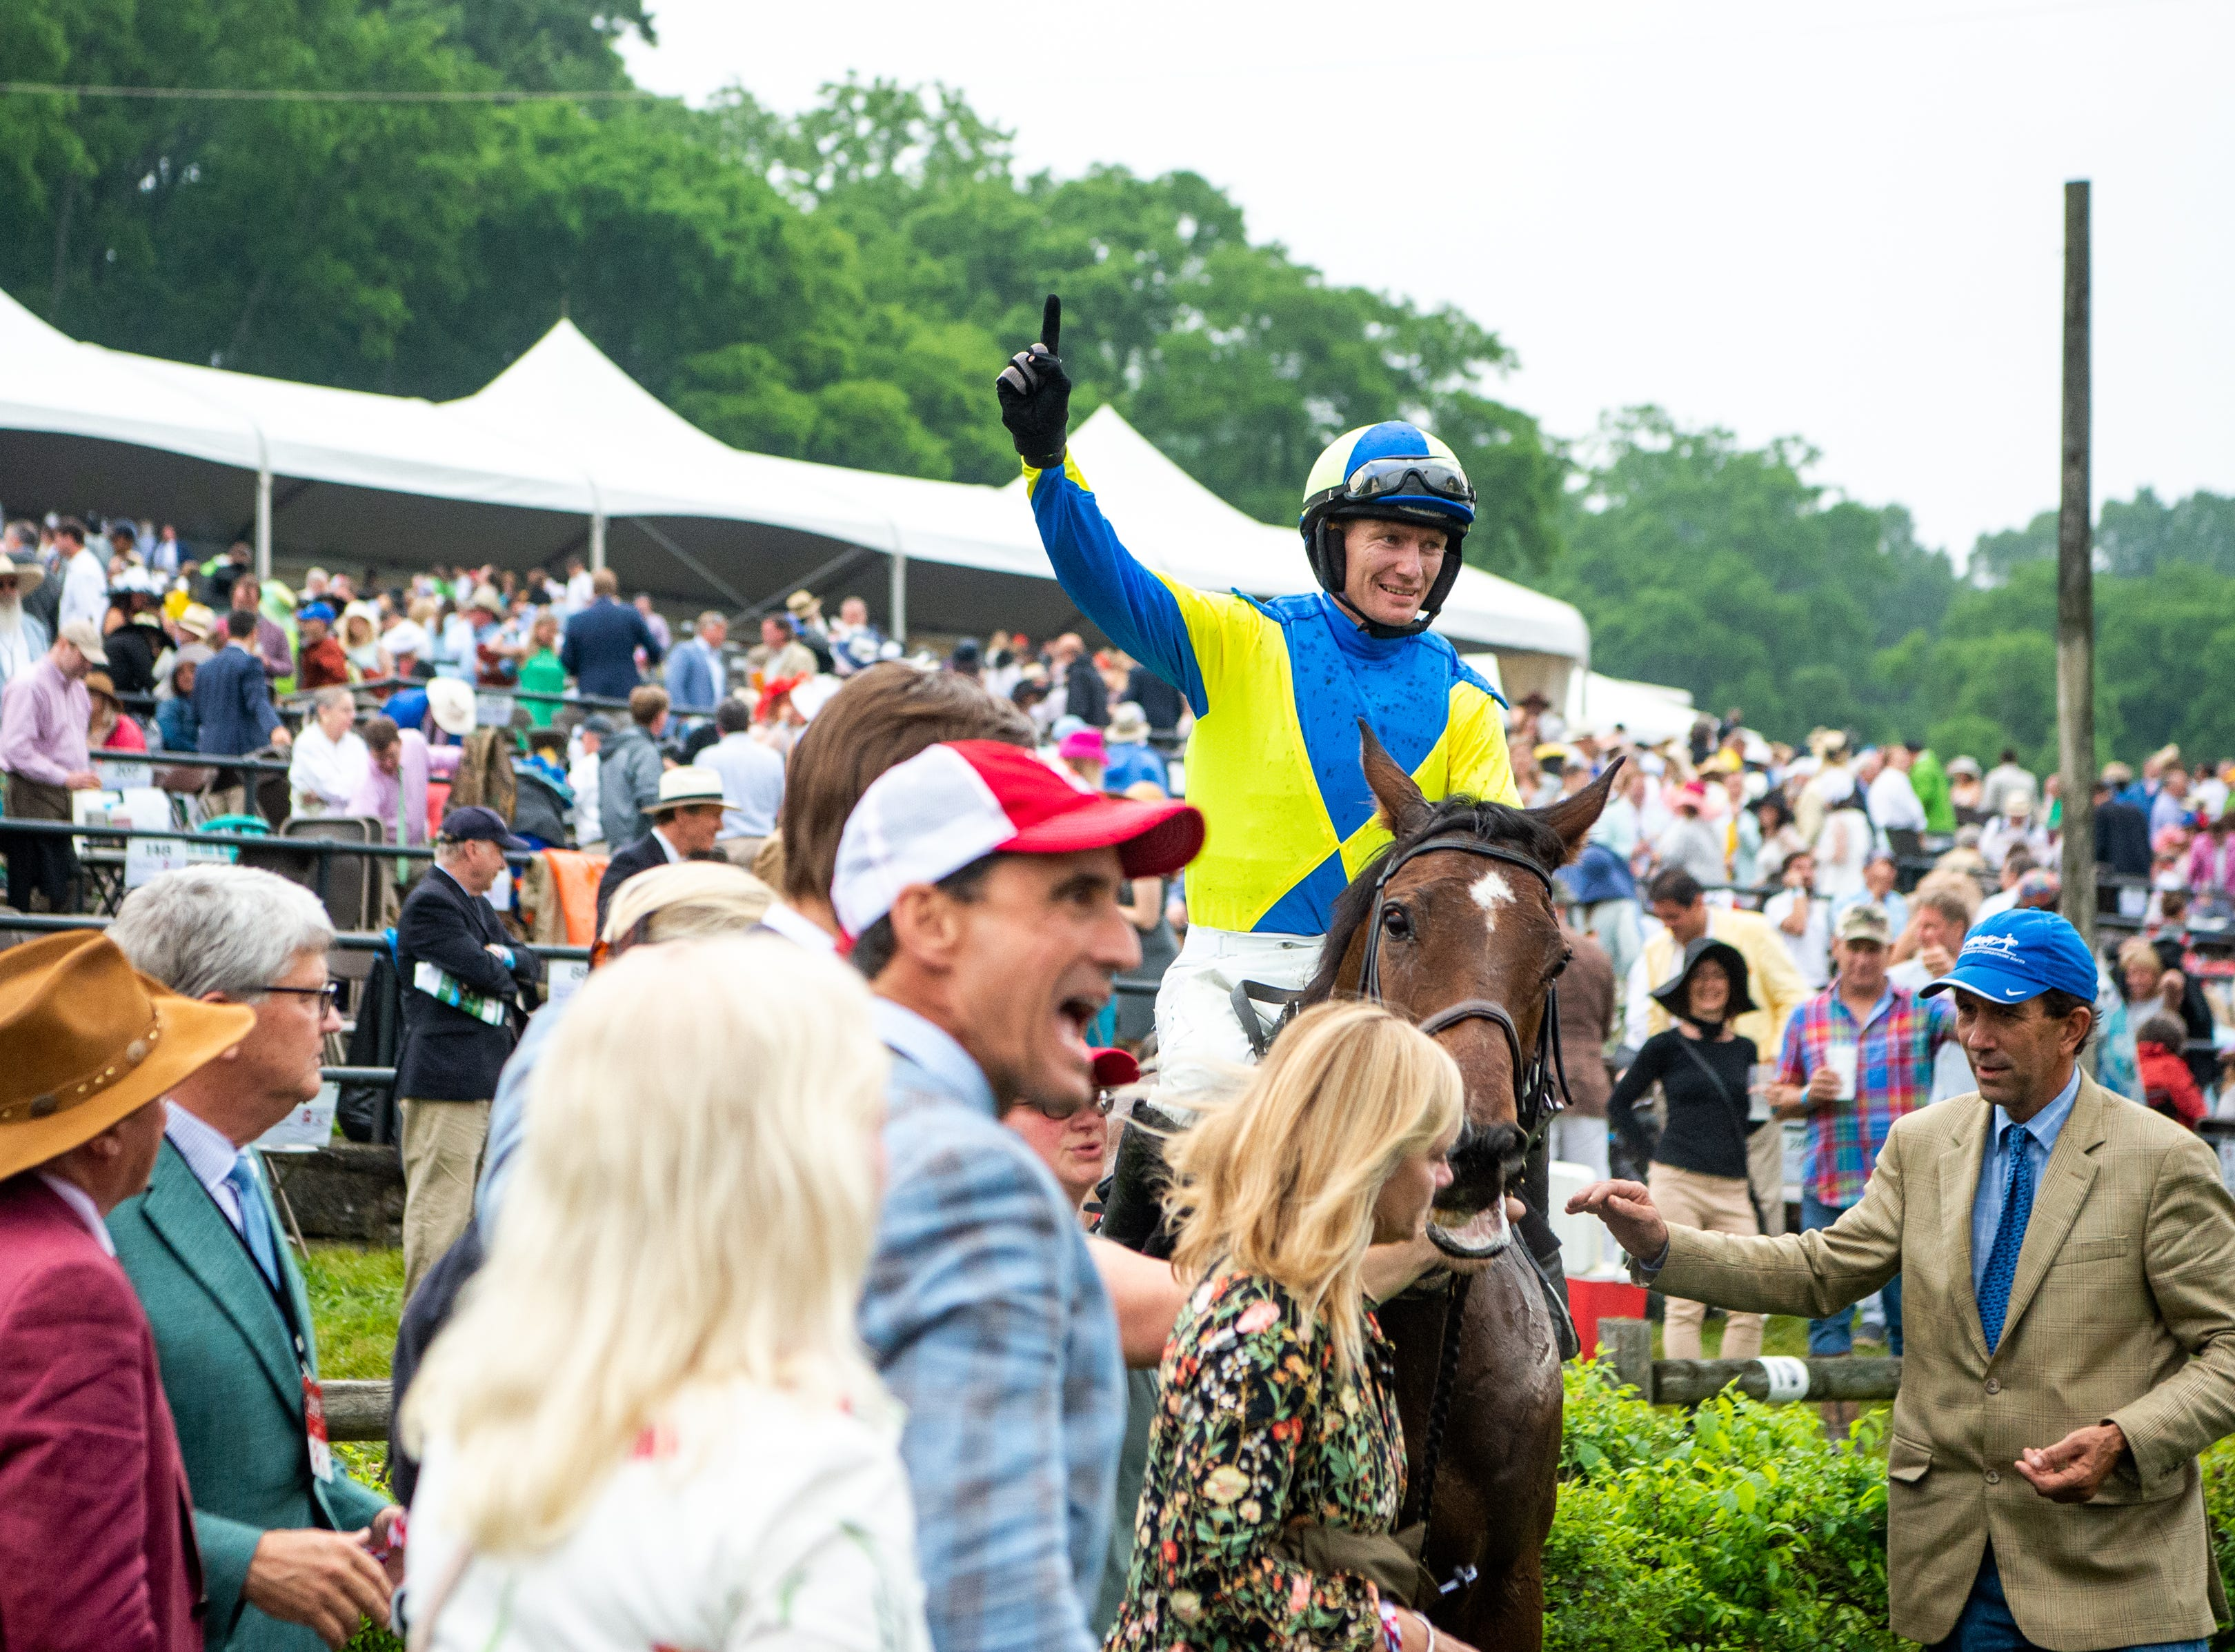 Sean McDermott and Scorpiancer celebrate after winning the final race of the Iroquois Steeplechase at Percy Warner Park Saturday, May 11, 2019, in Nashville, Tenn.